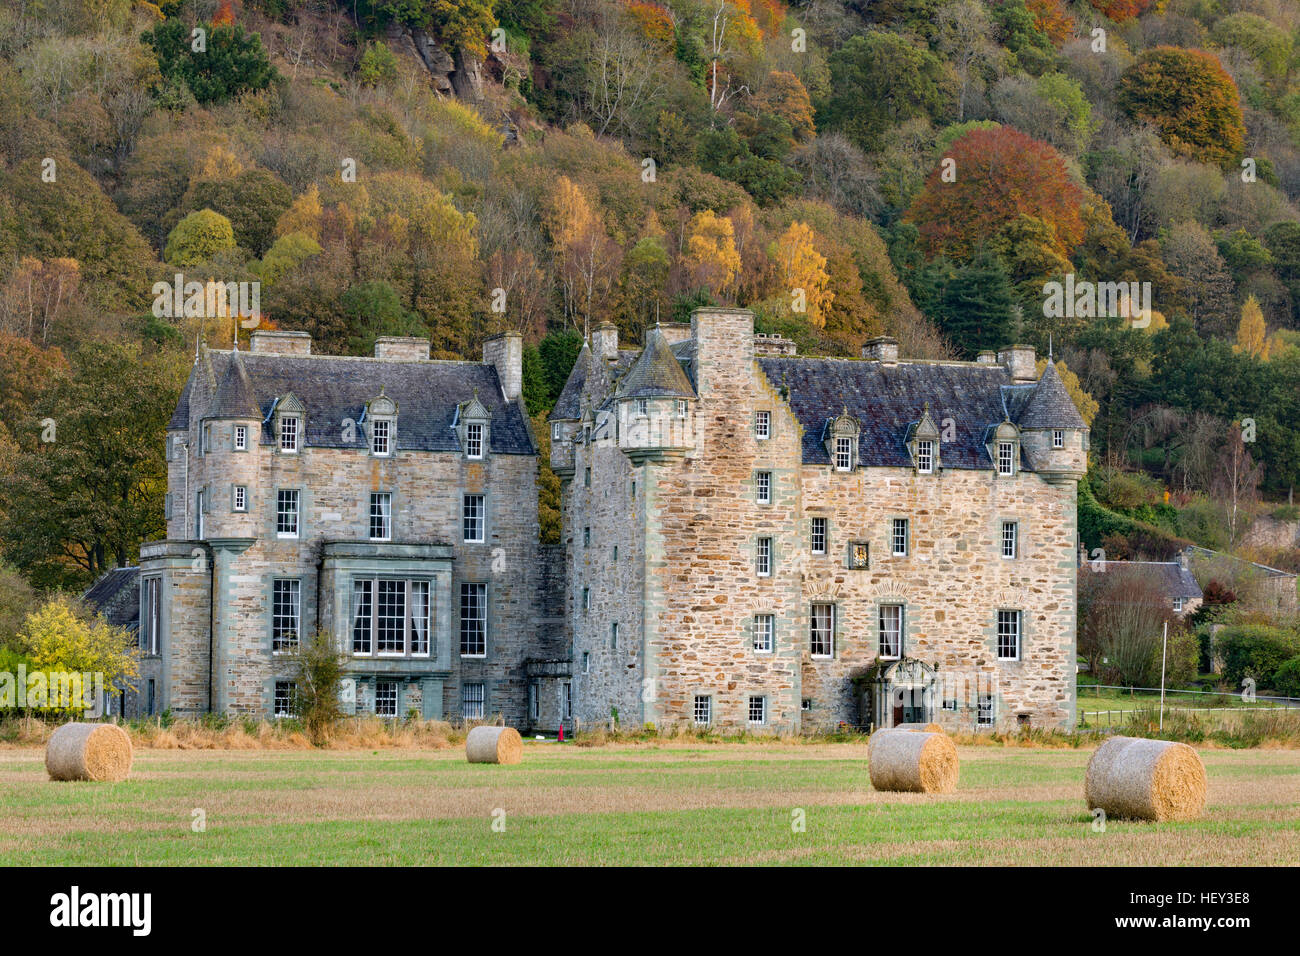 Castle Menzies, Weem, Pertshire, with hay bales in the fireground and a woodland in Autumn colours in the background. - Stock Image